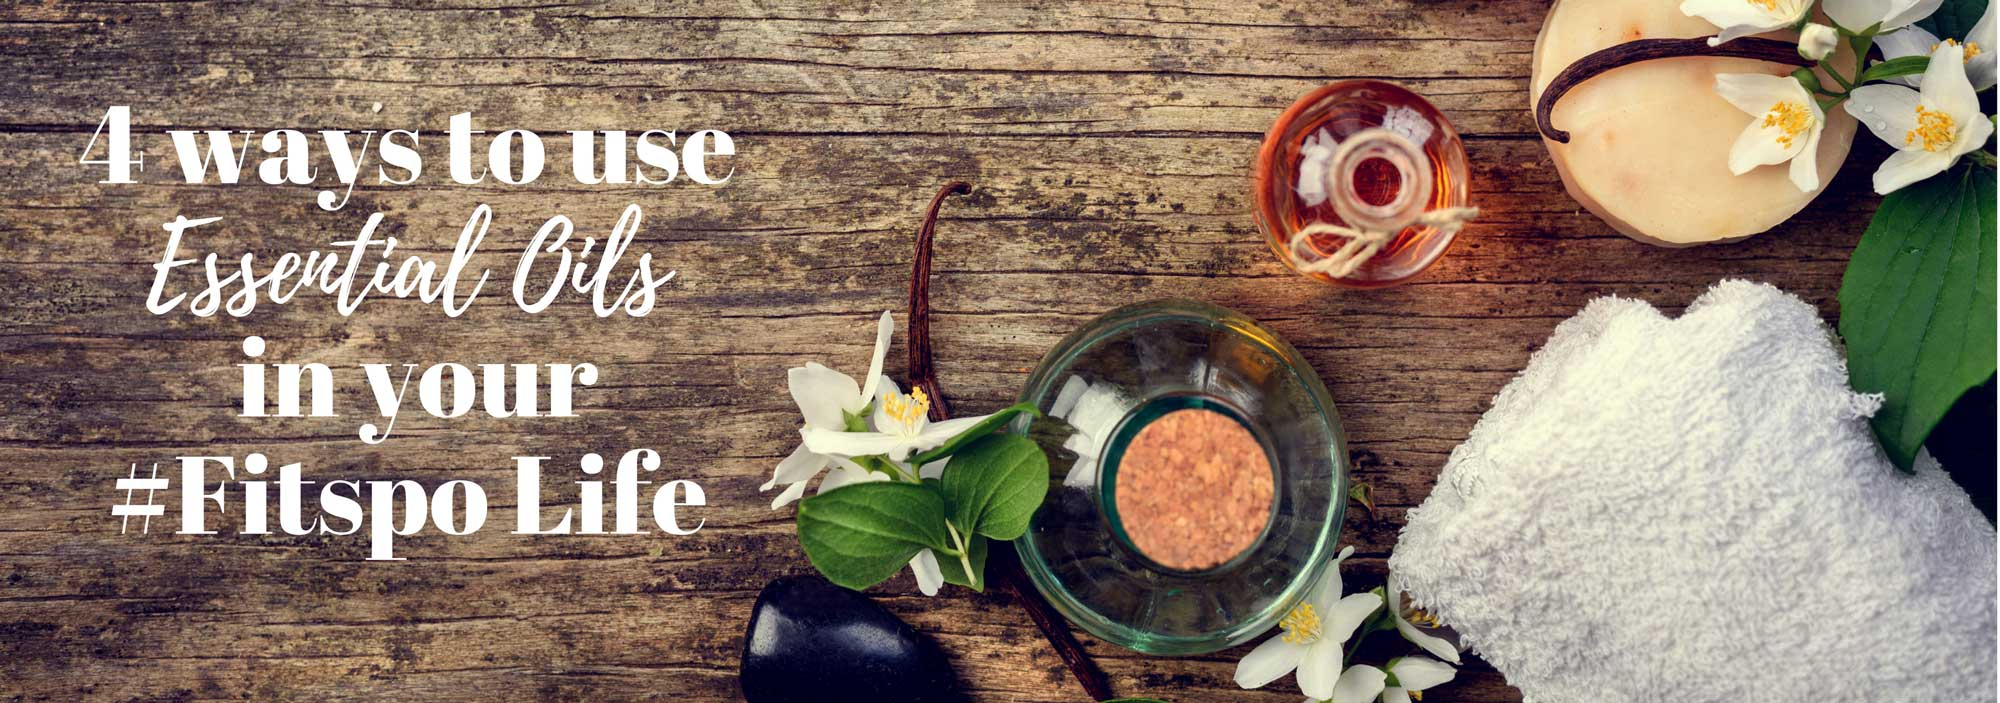 4 Ways to Use Essential Oils in your #Fitspo Life